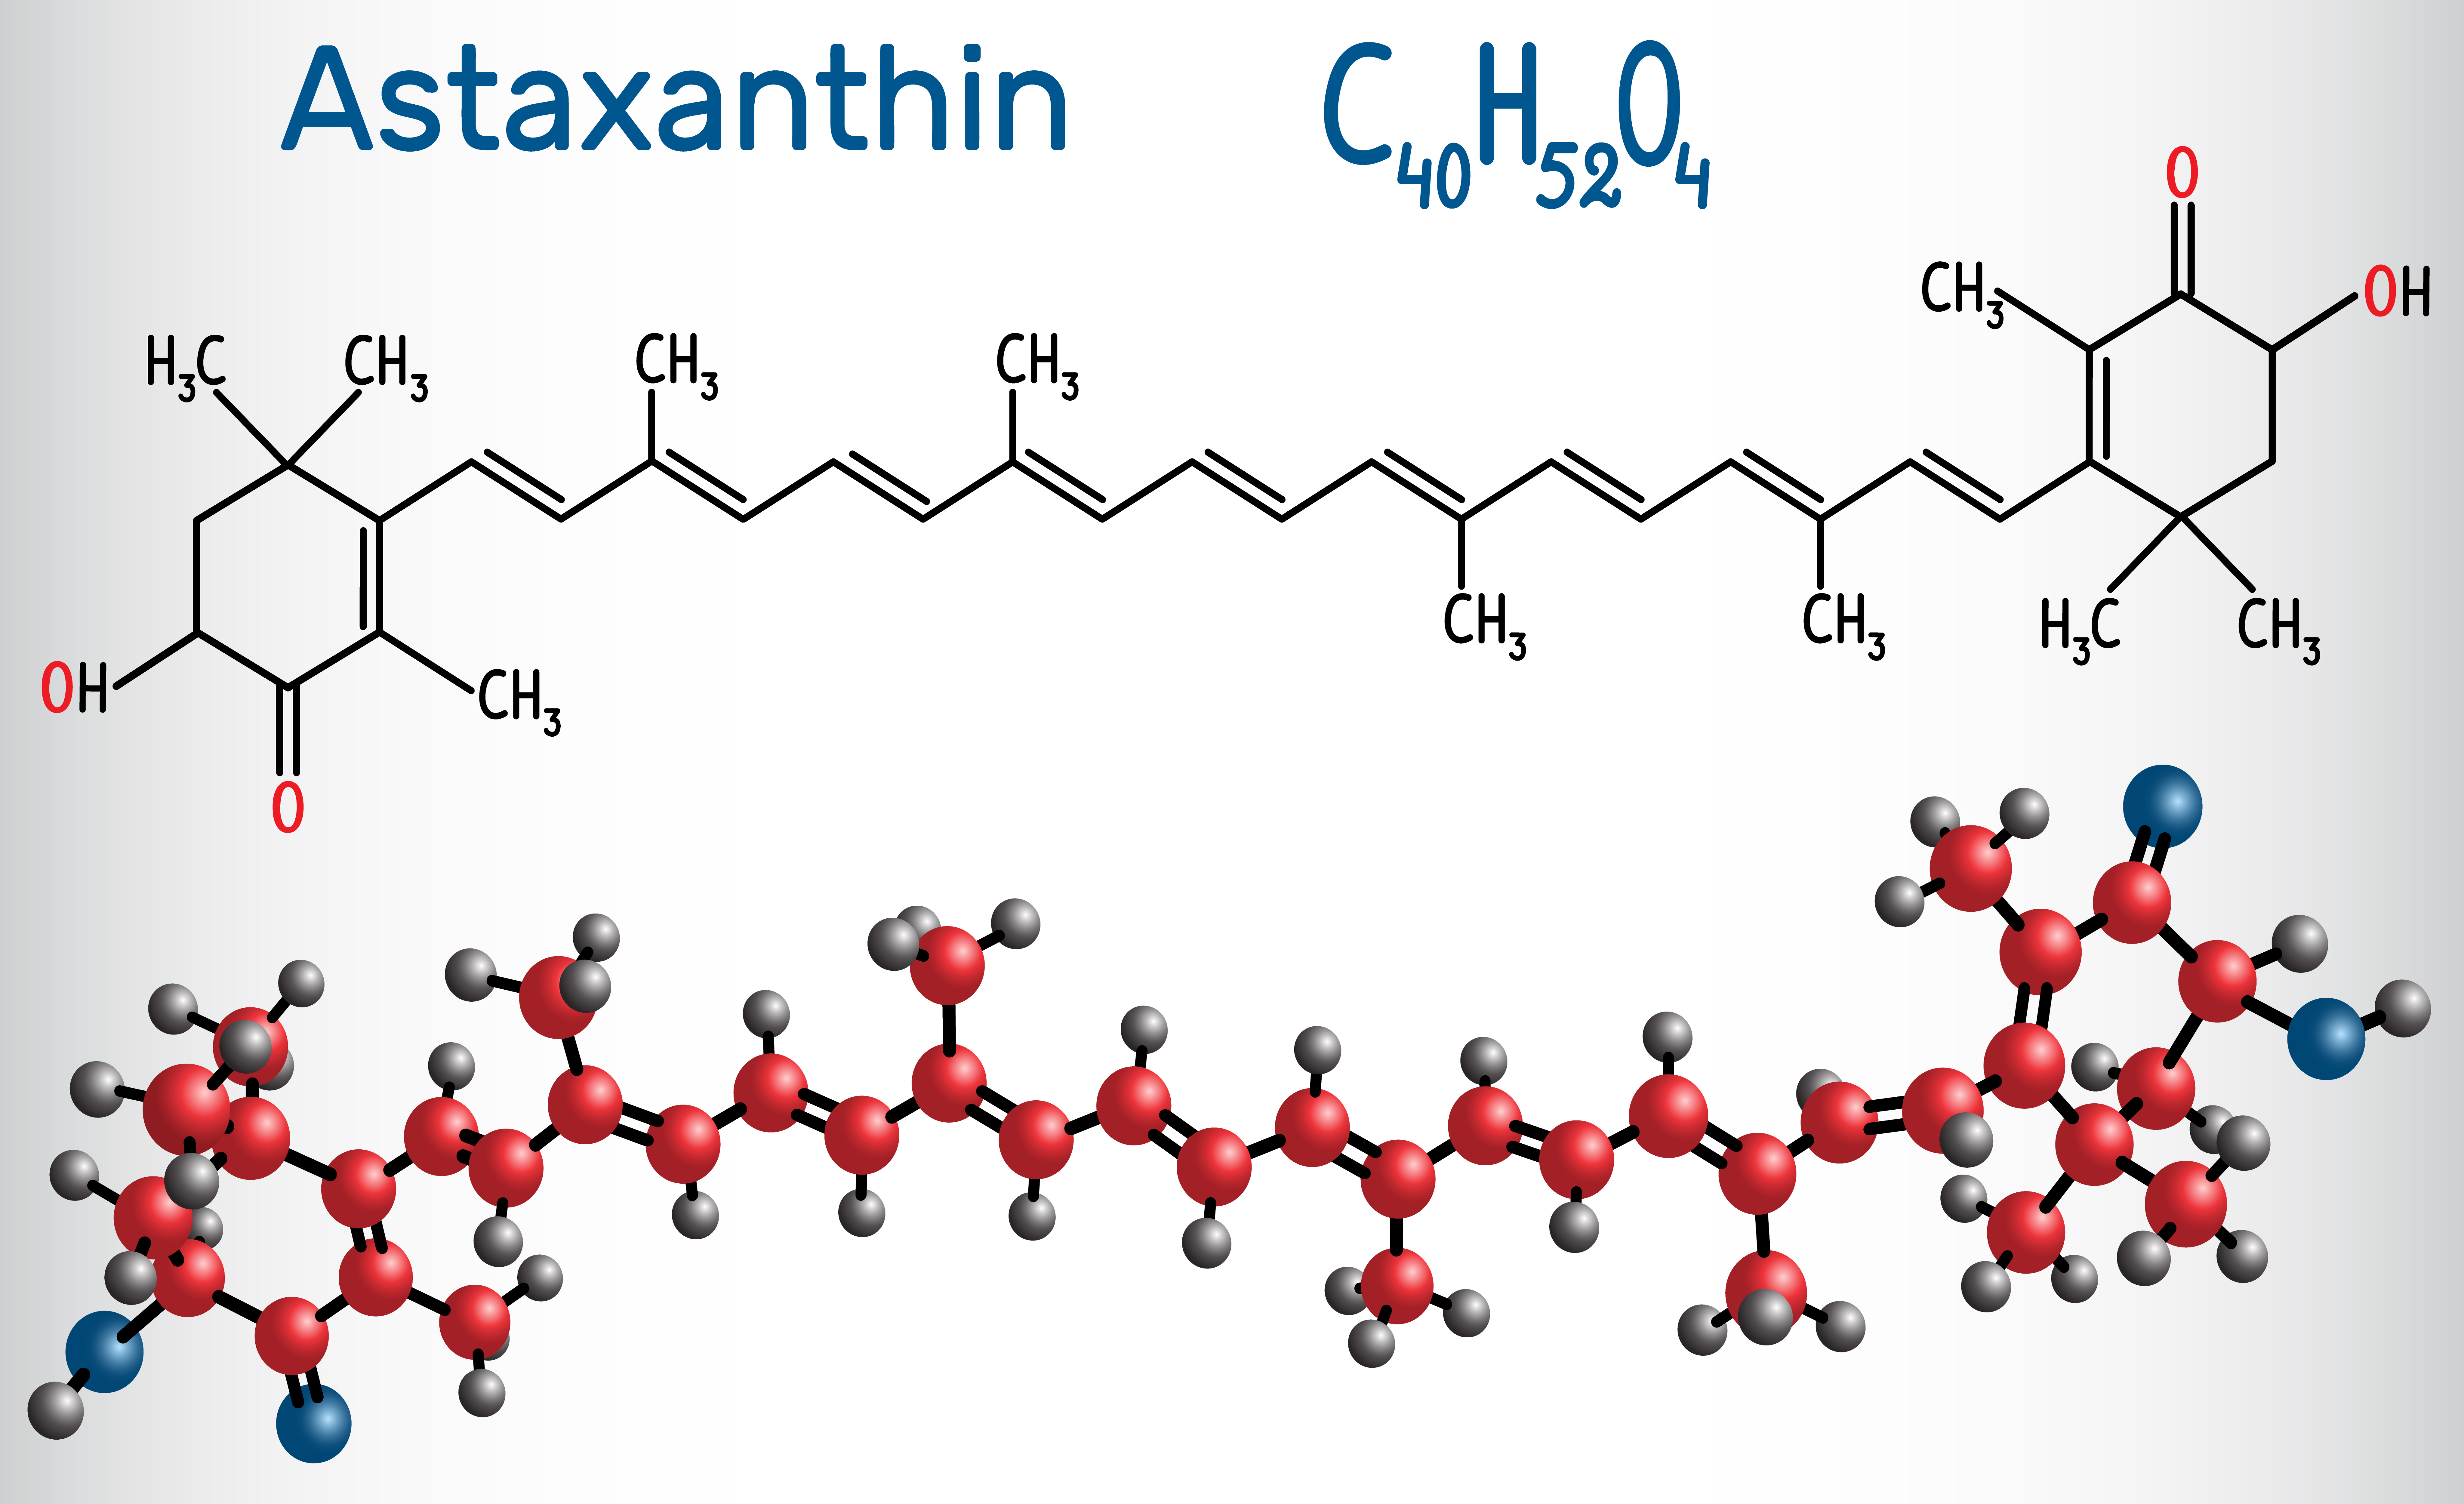 Astaxanthin chemical formulation